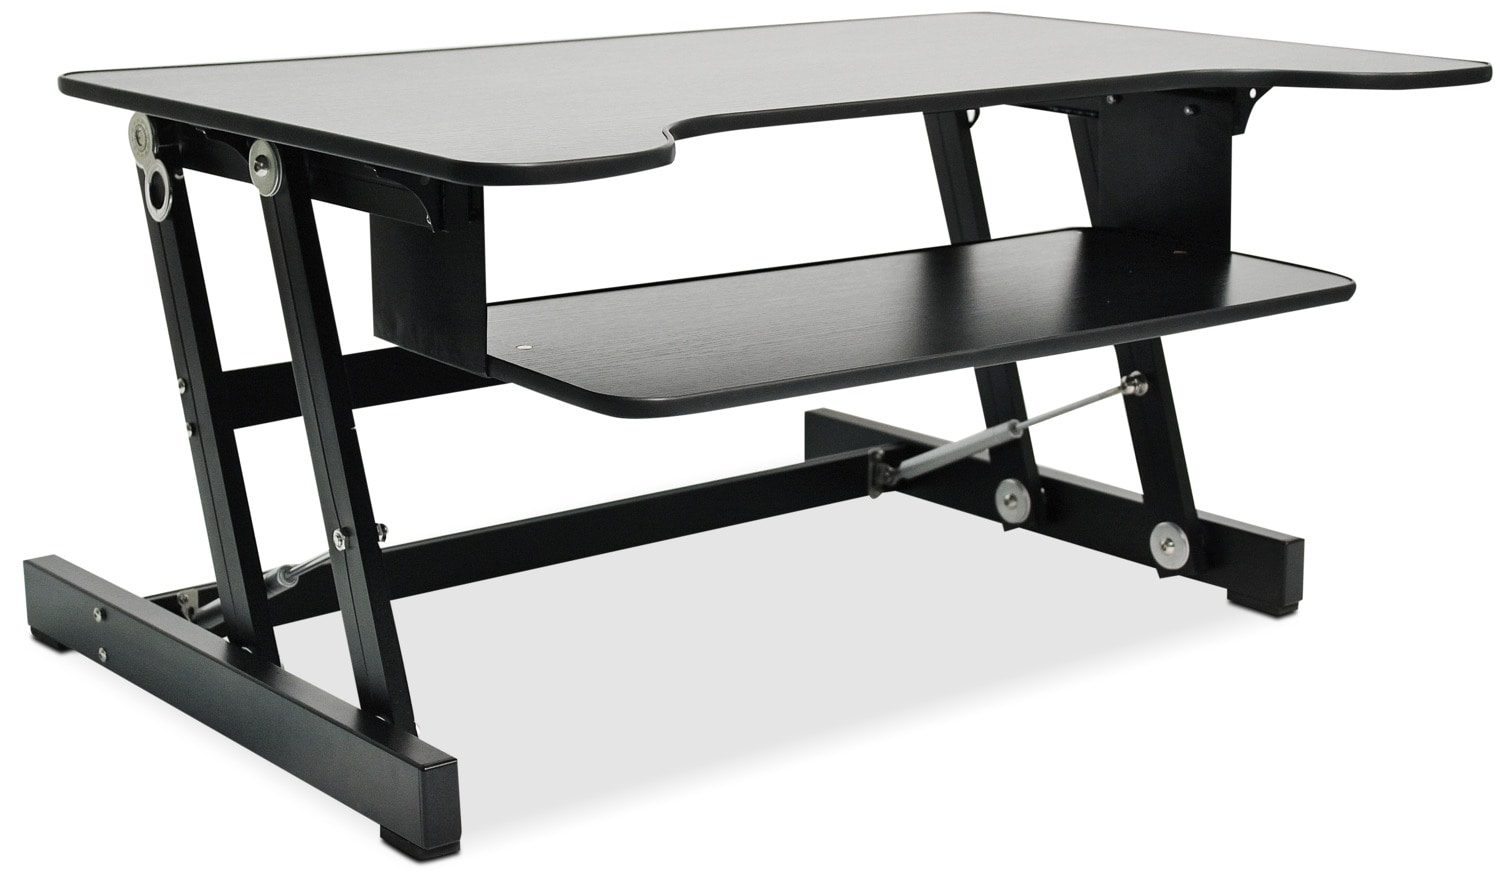 Home Office Furniture - Rocelco Adjustable Desk Riser - Black